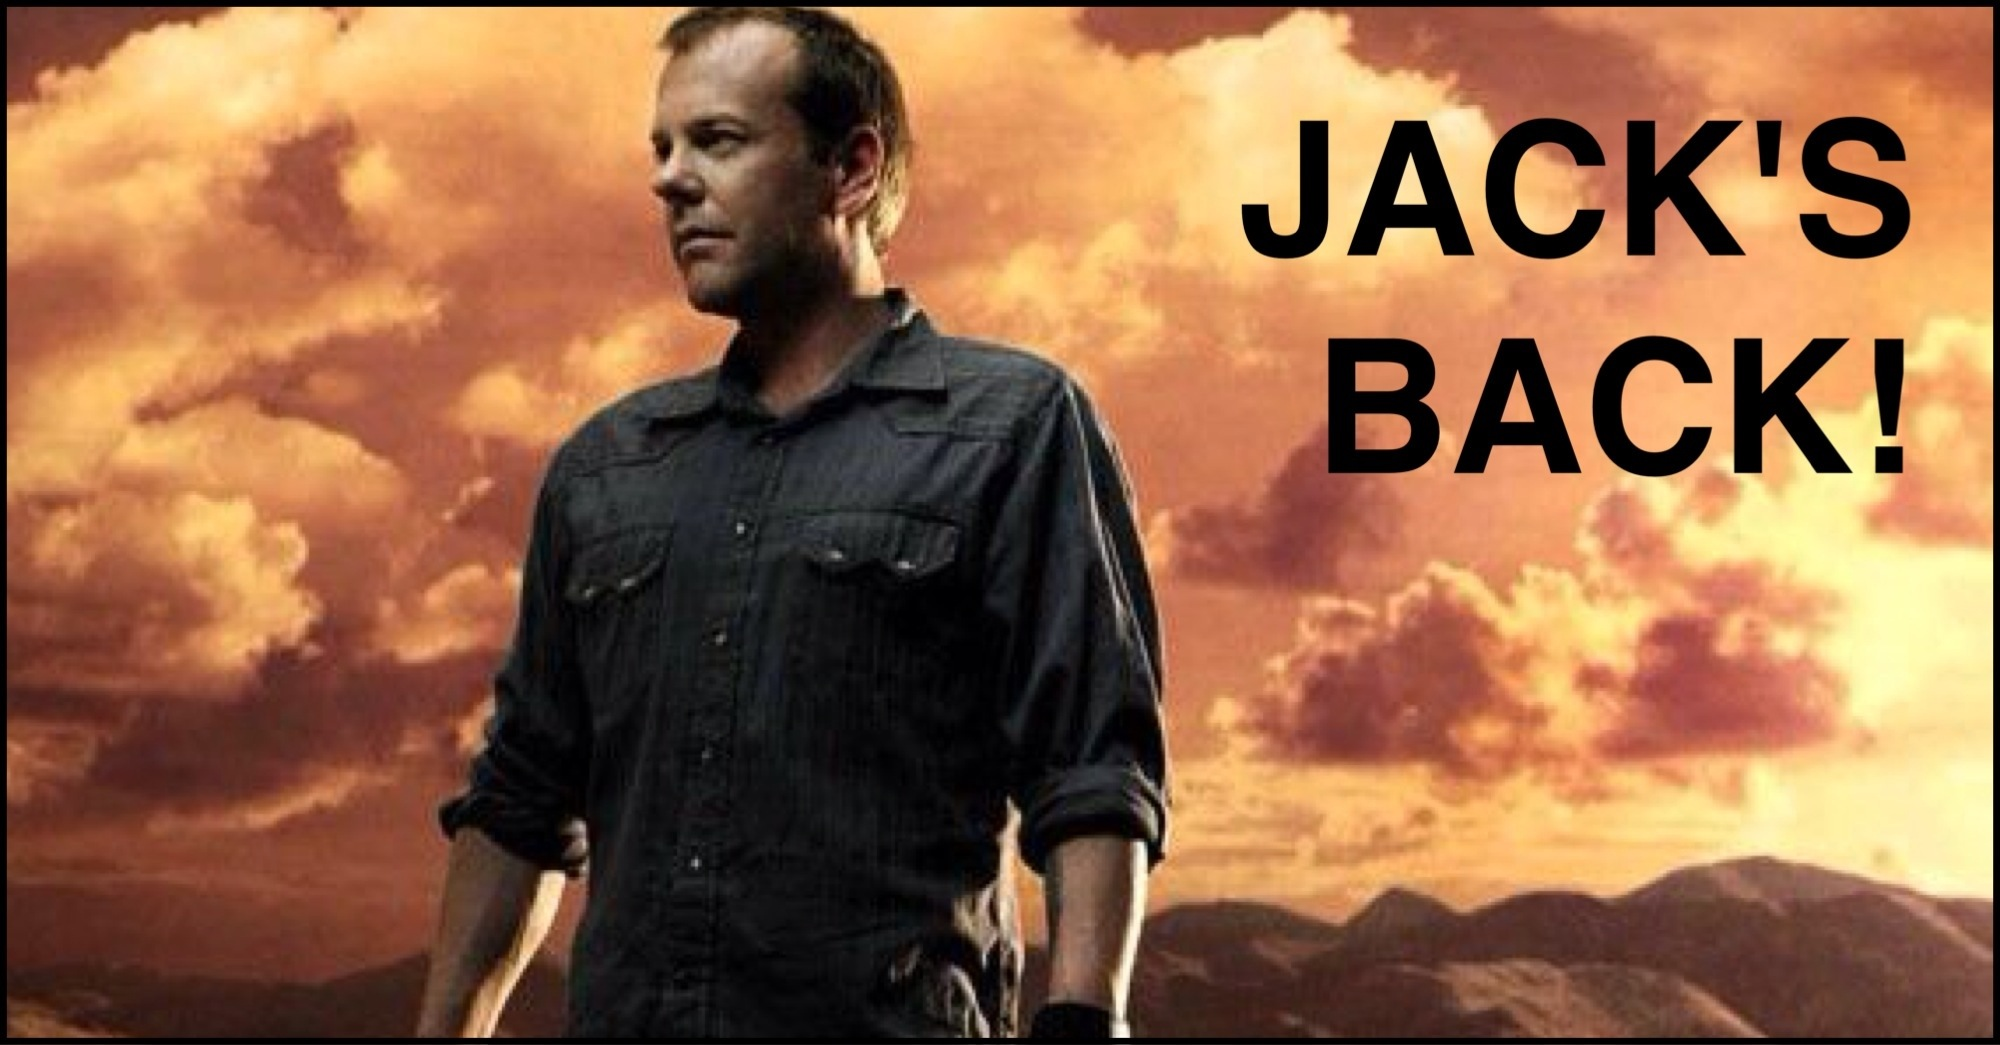 Jack's Back is a Crime-horror film written and directed by Rowdy Herrington and starring James Spader and Cynthia Gibb.